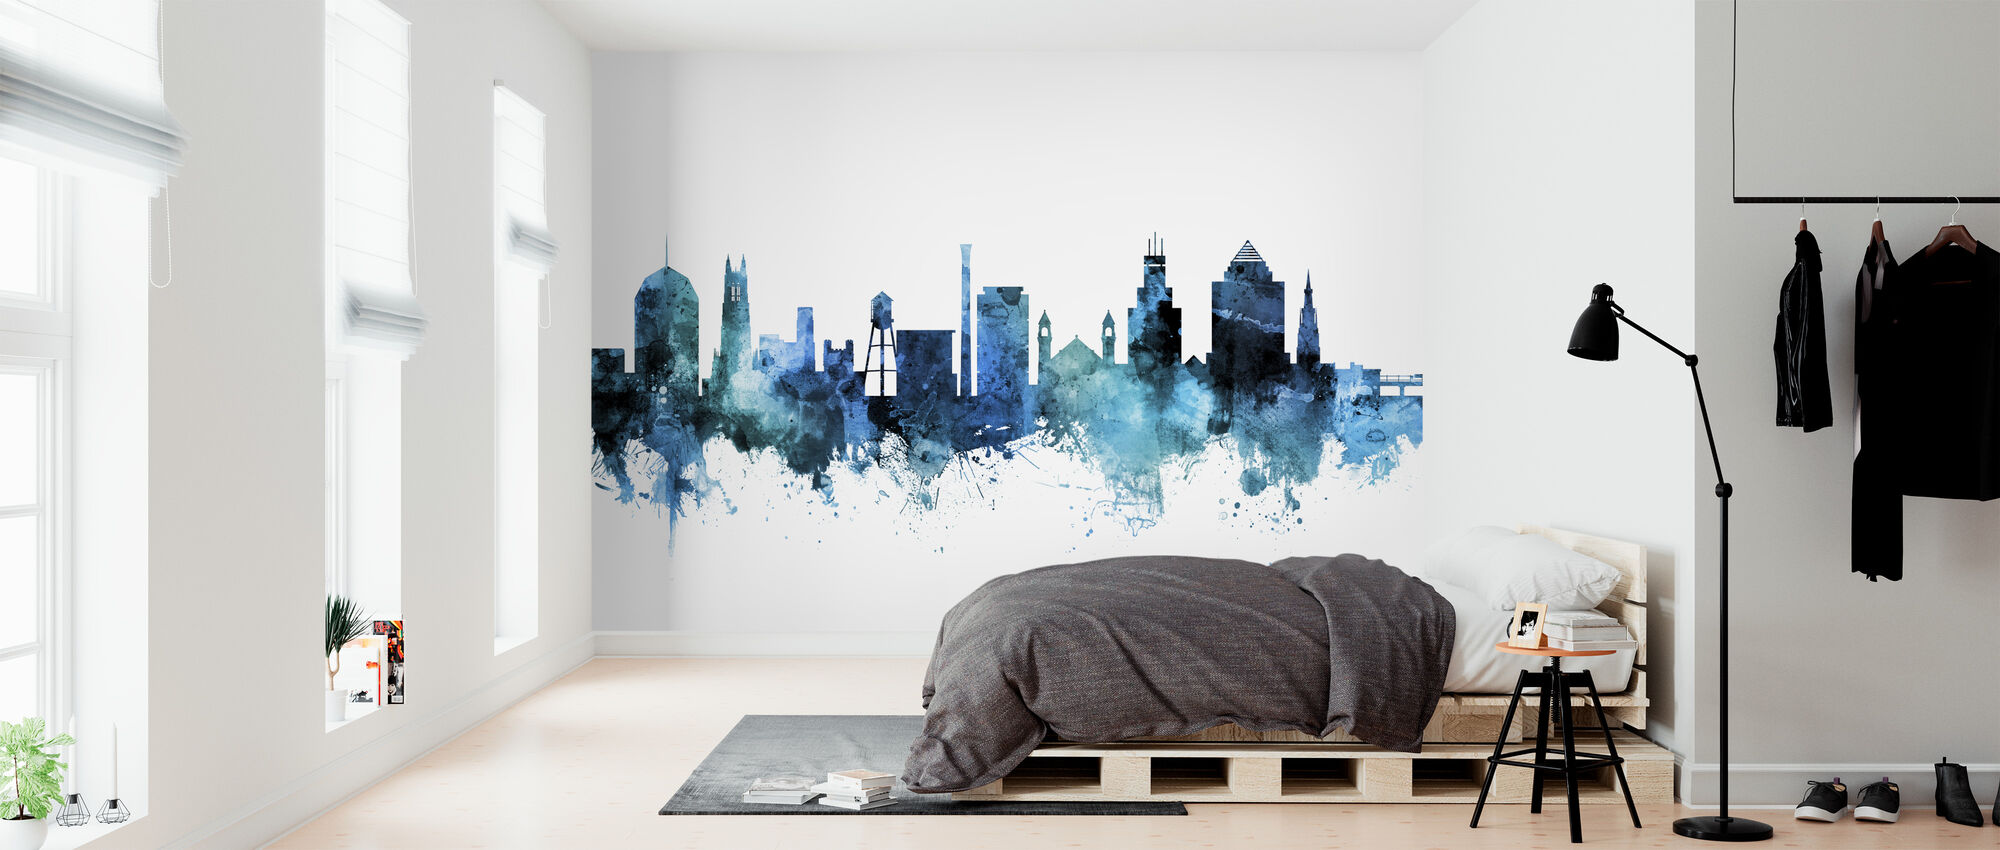 Skyline van Durham North Carolina - Behang - Slaapkamer